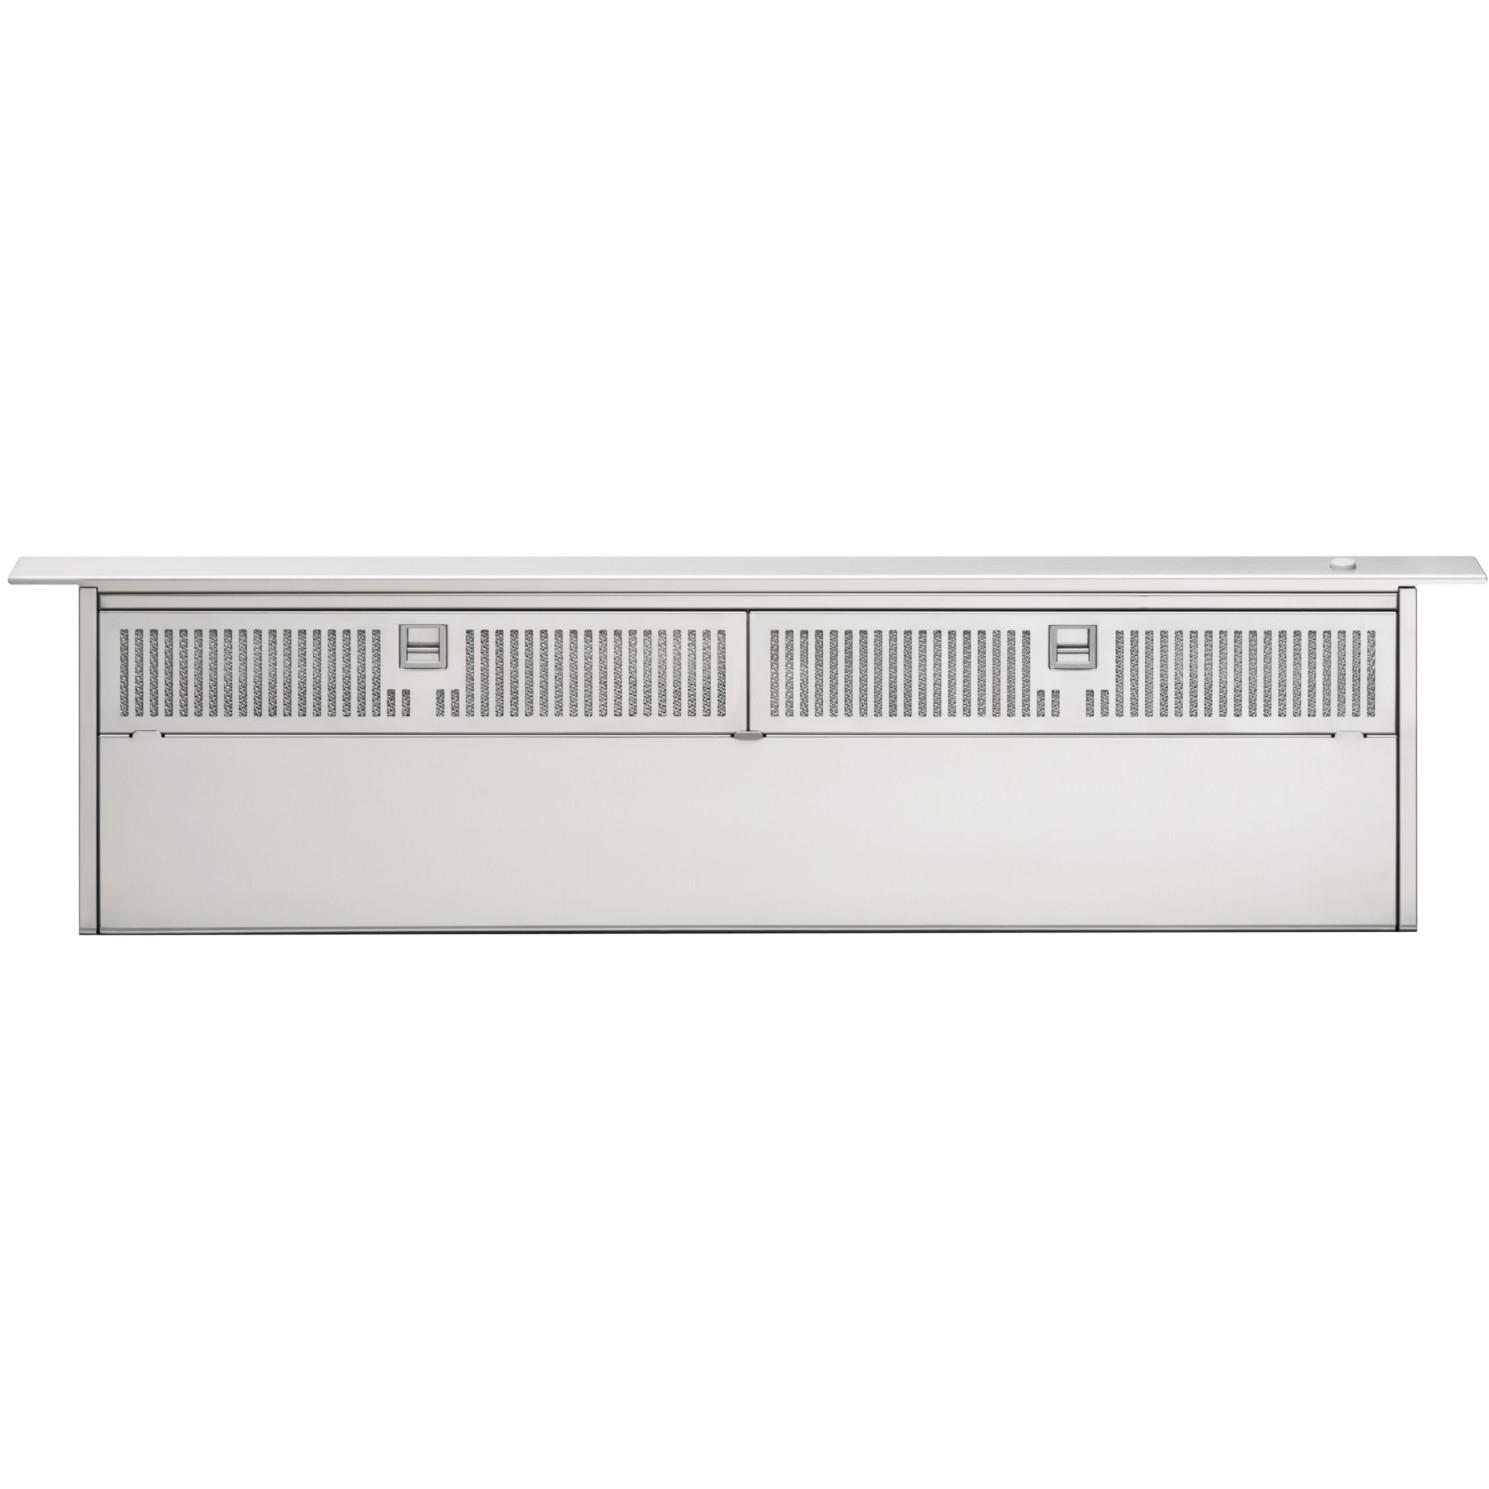 DCS DD36 36-Inch Down Draft Vent By Fisher Paykel